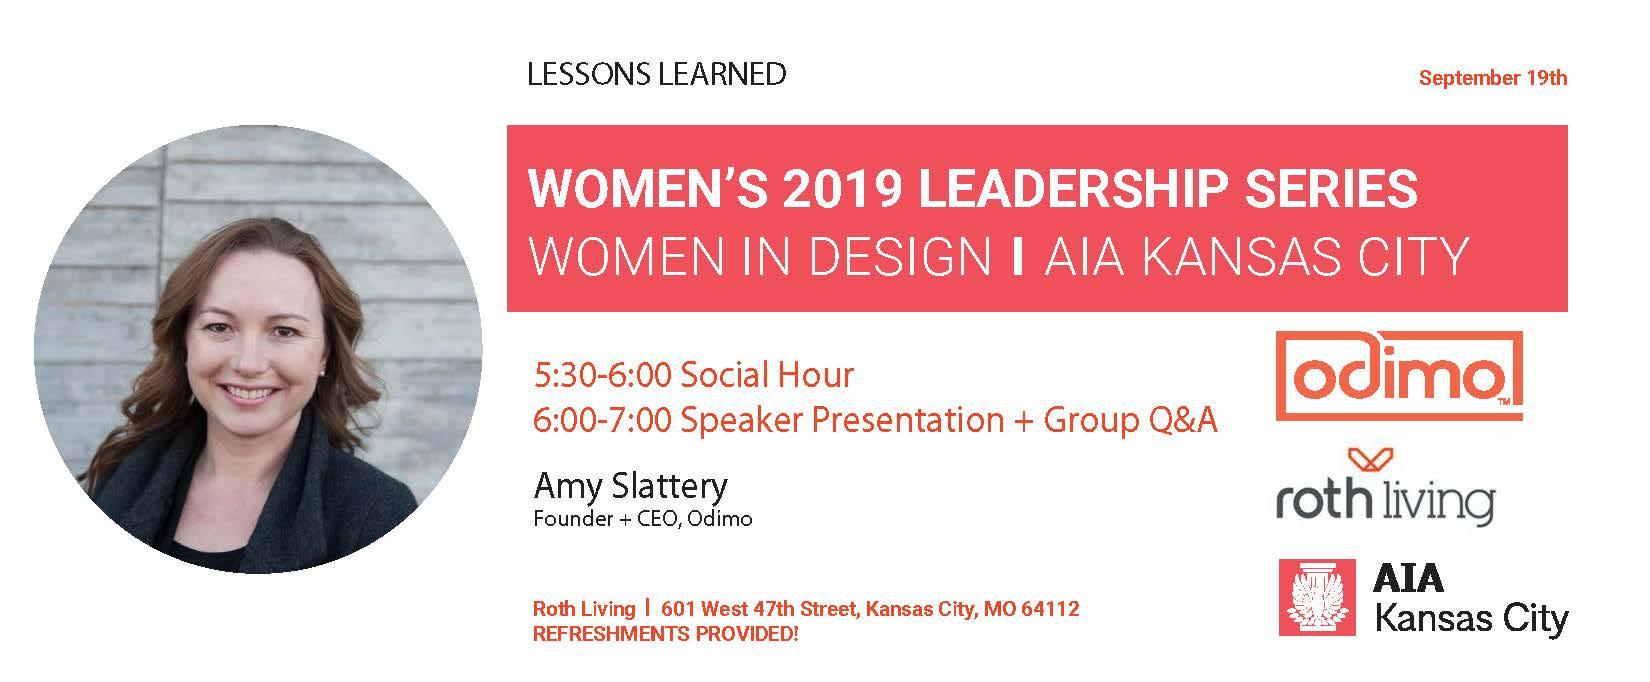 Women in Design | Women's 2019 Leadership Series